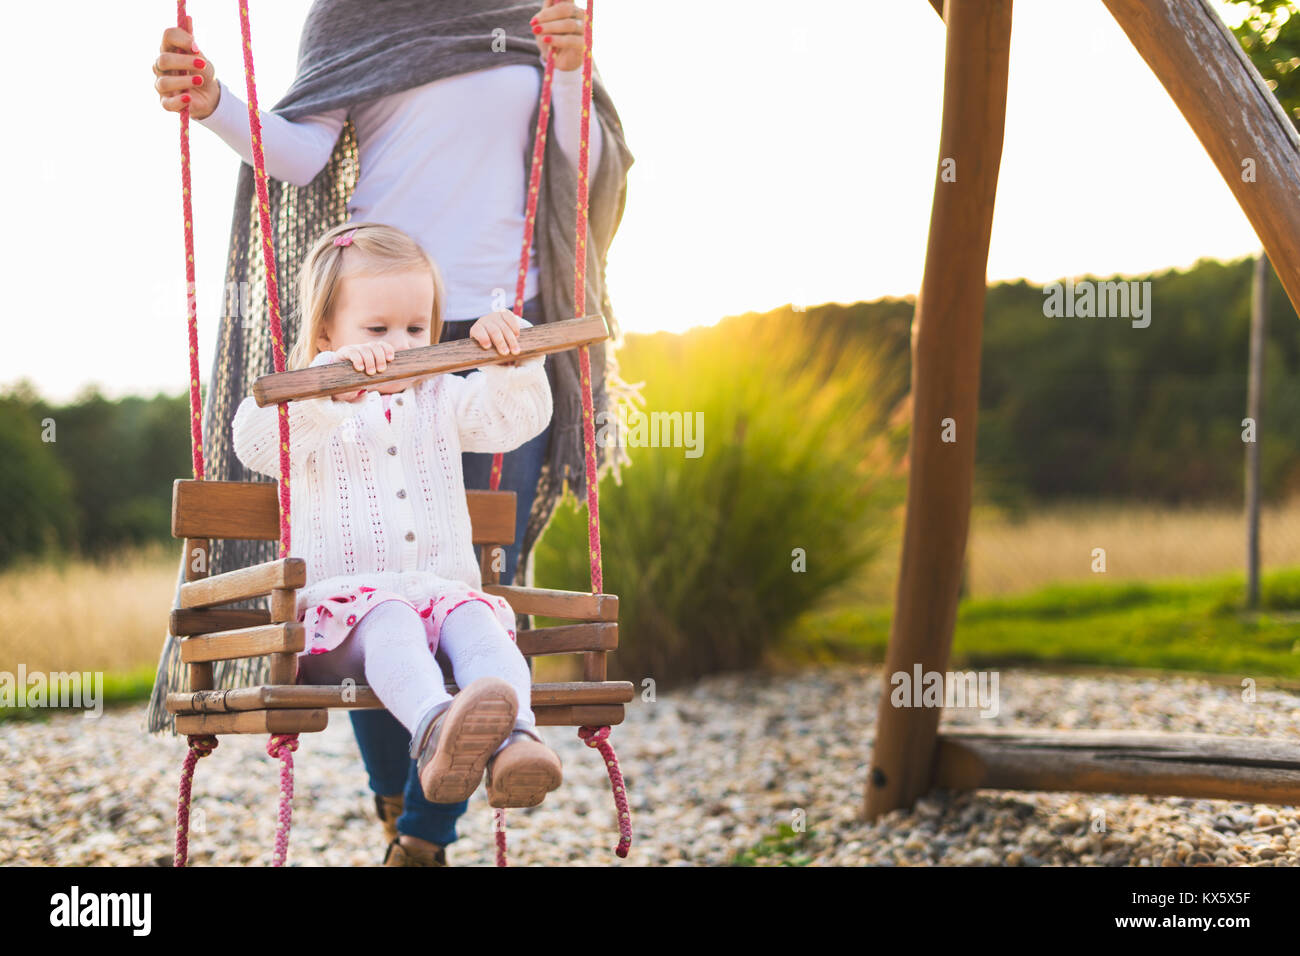 Single mother with toddler daughter swinging on a playground. Childhood, Family, Happy, Summer Outdoor Concept. - Stock Image